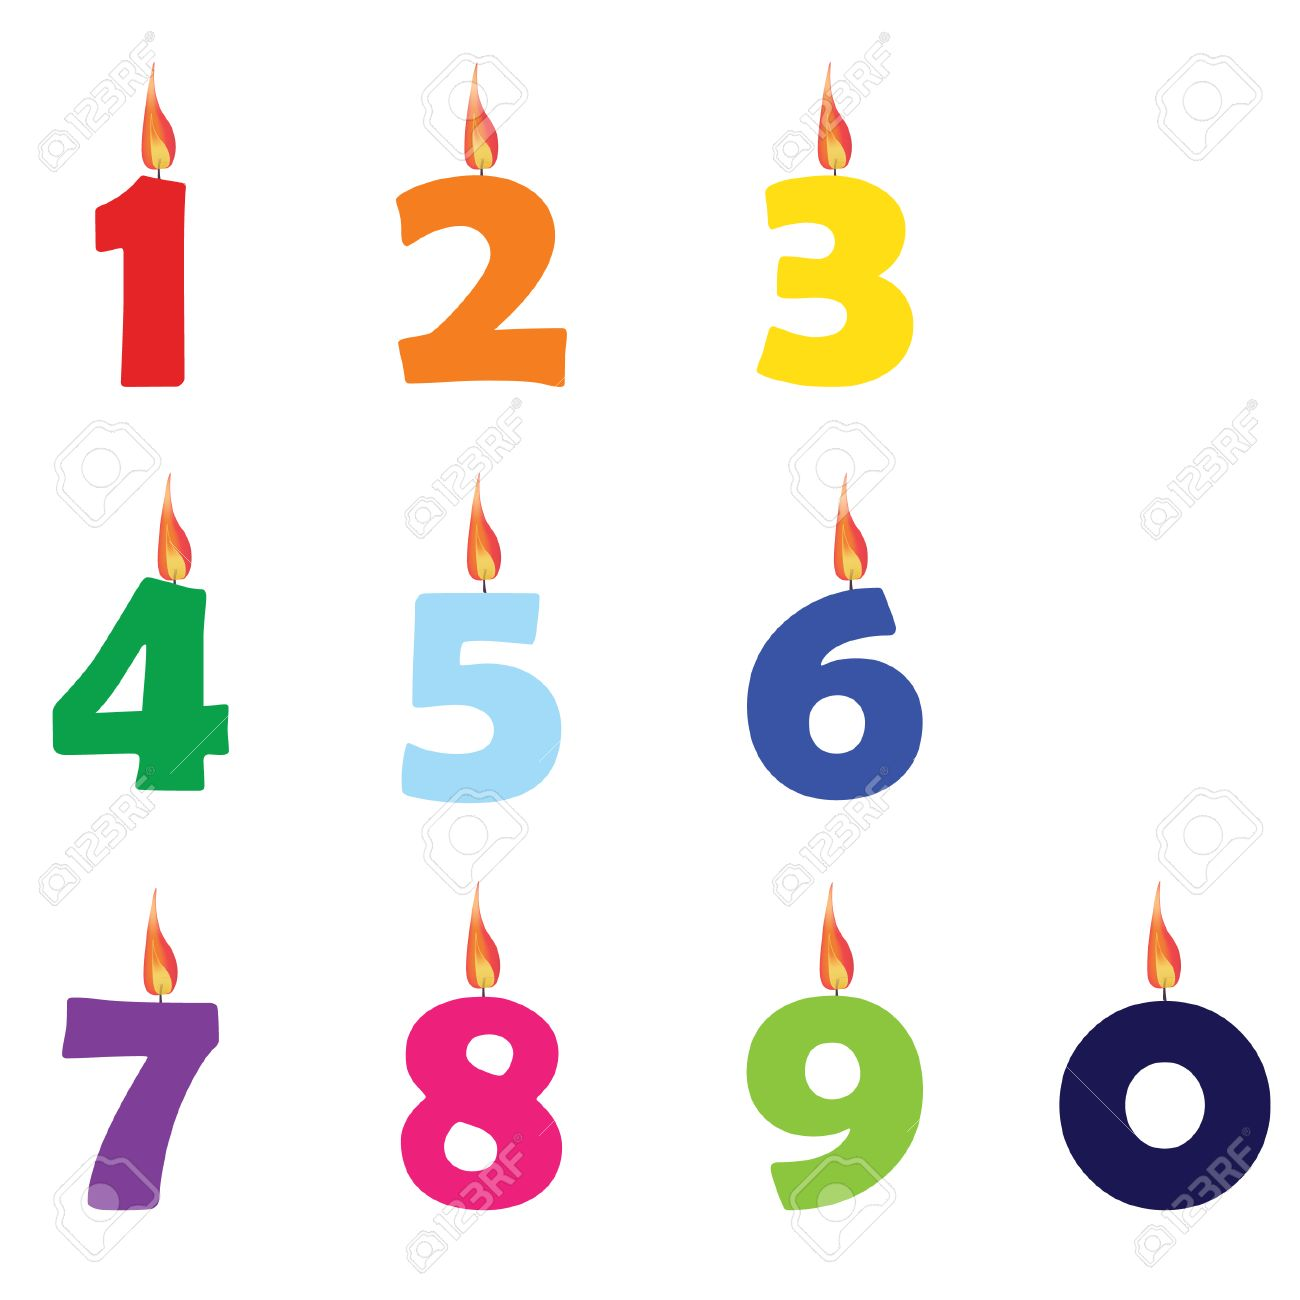 Super 48,077 Birthday Candle Stock Vector Illustration And Royalty Free  XD79